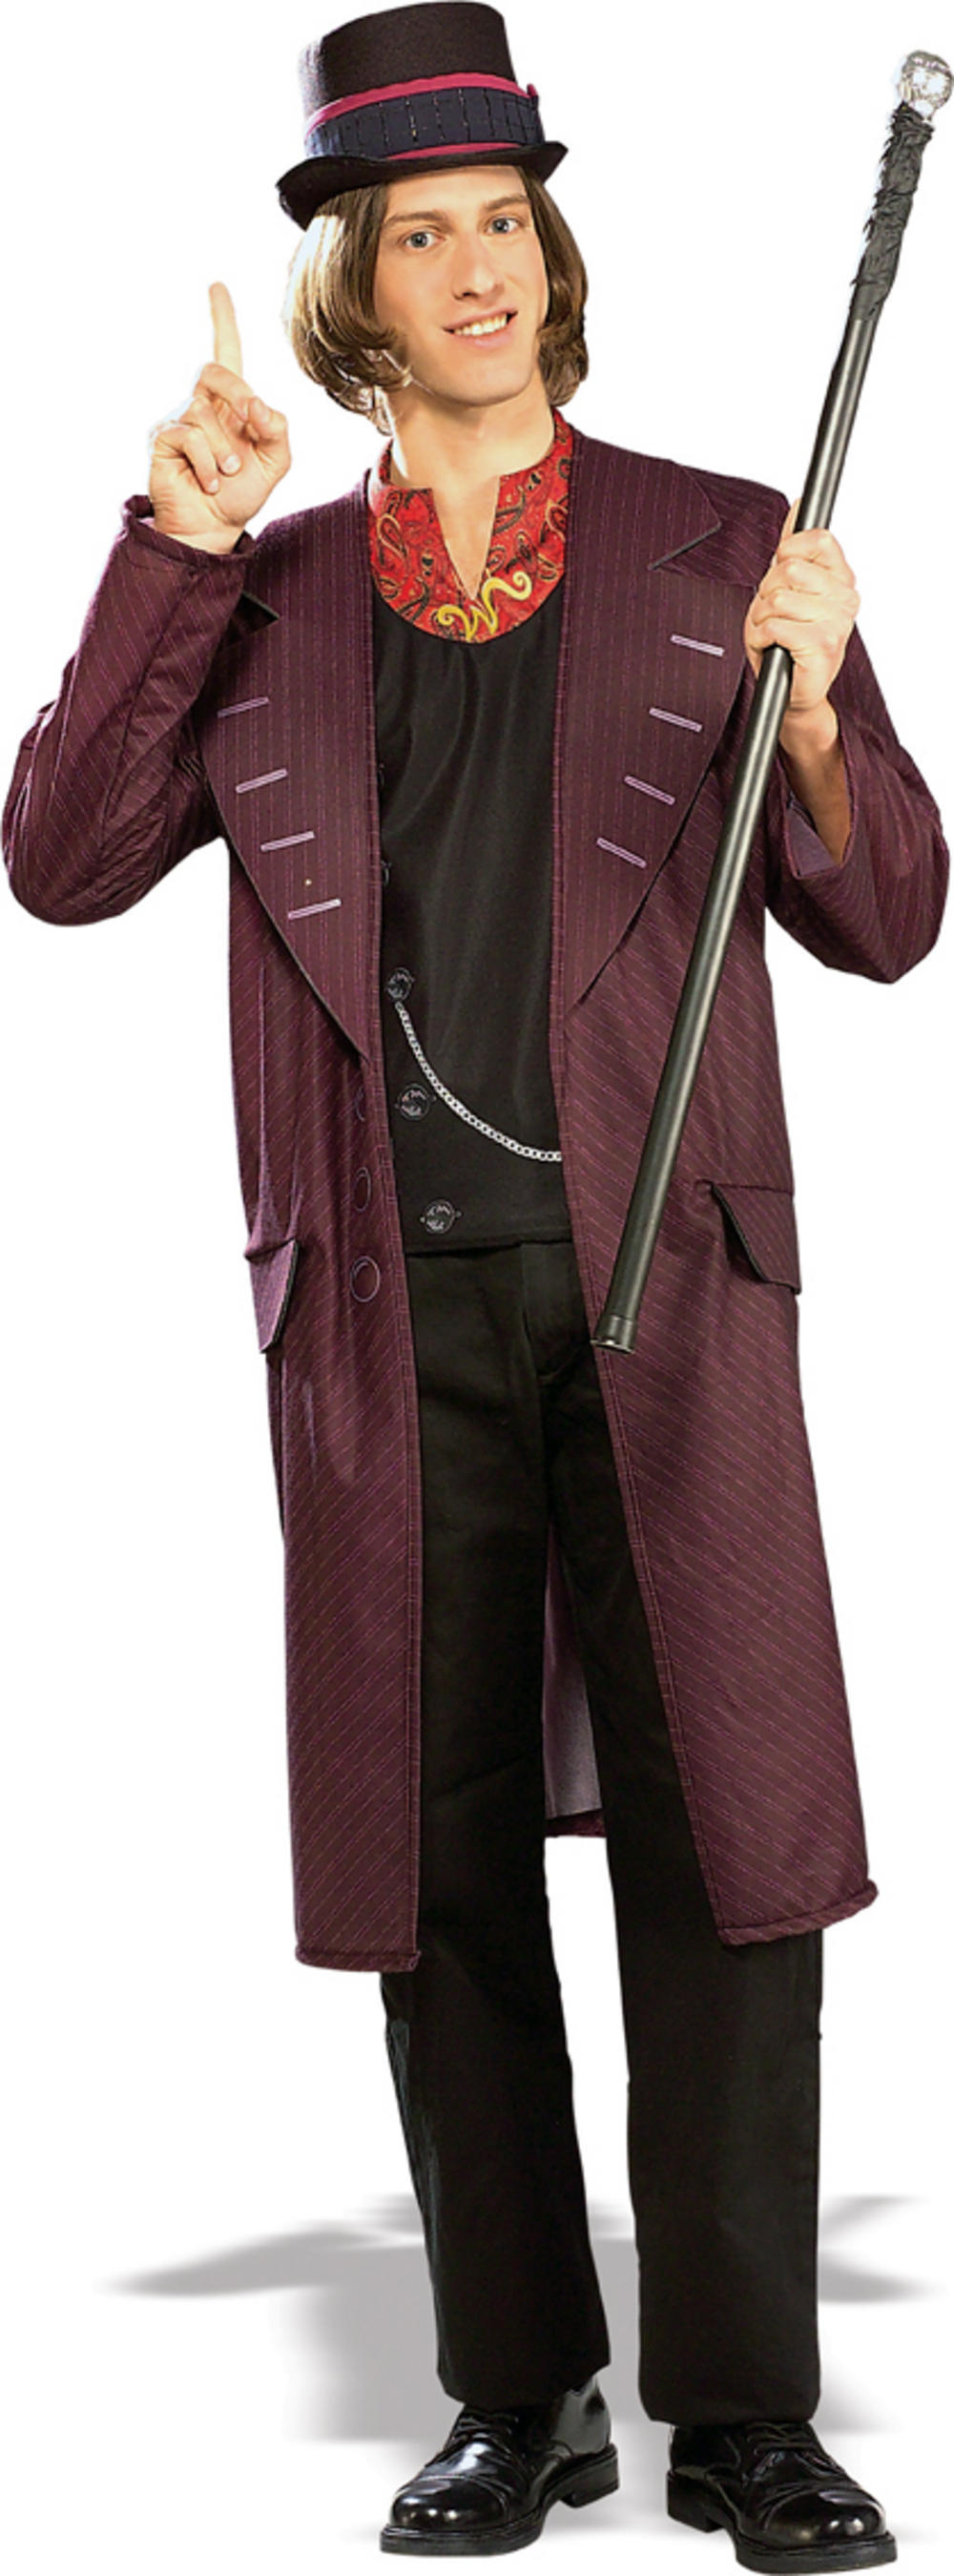 costume Willy adult wonka